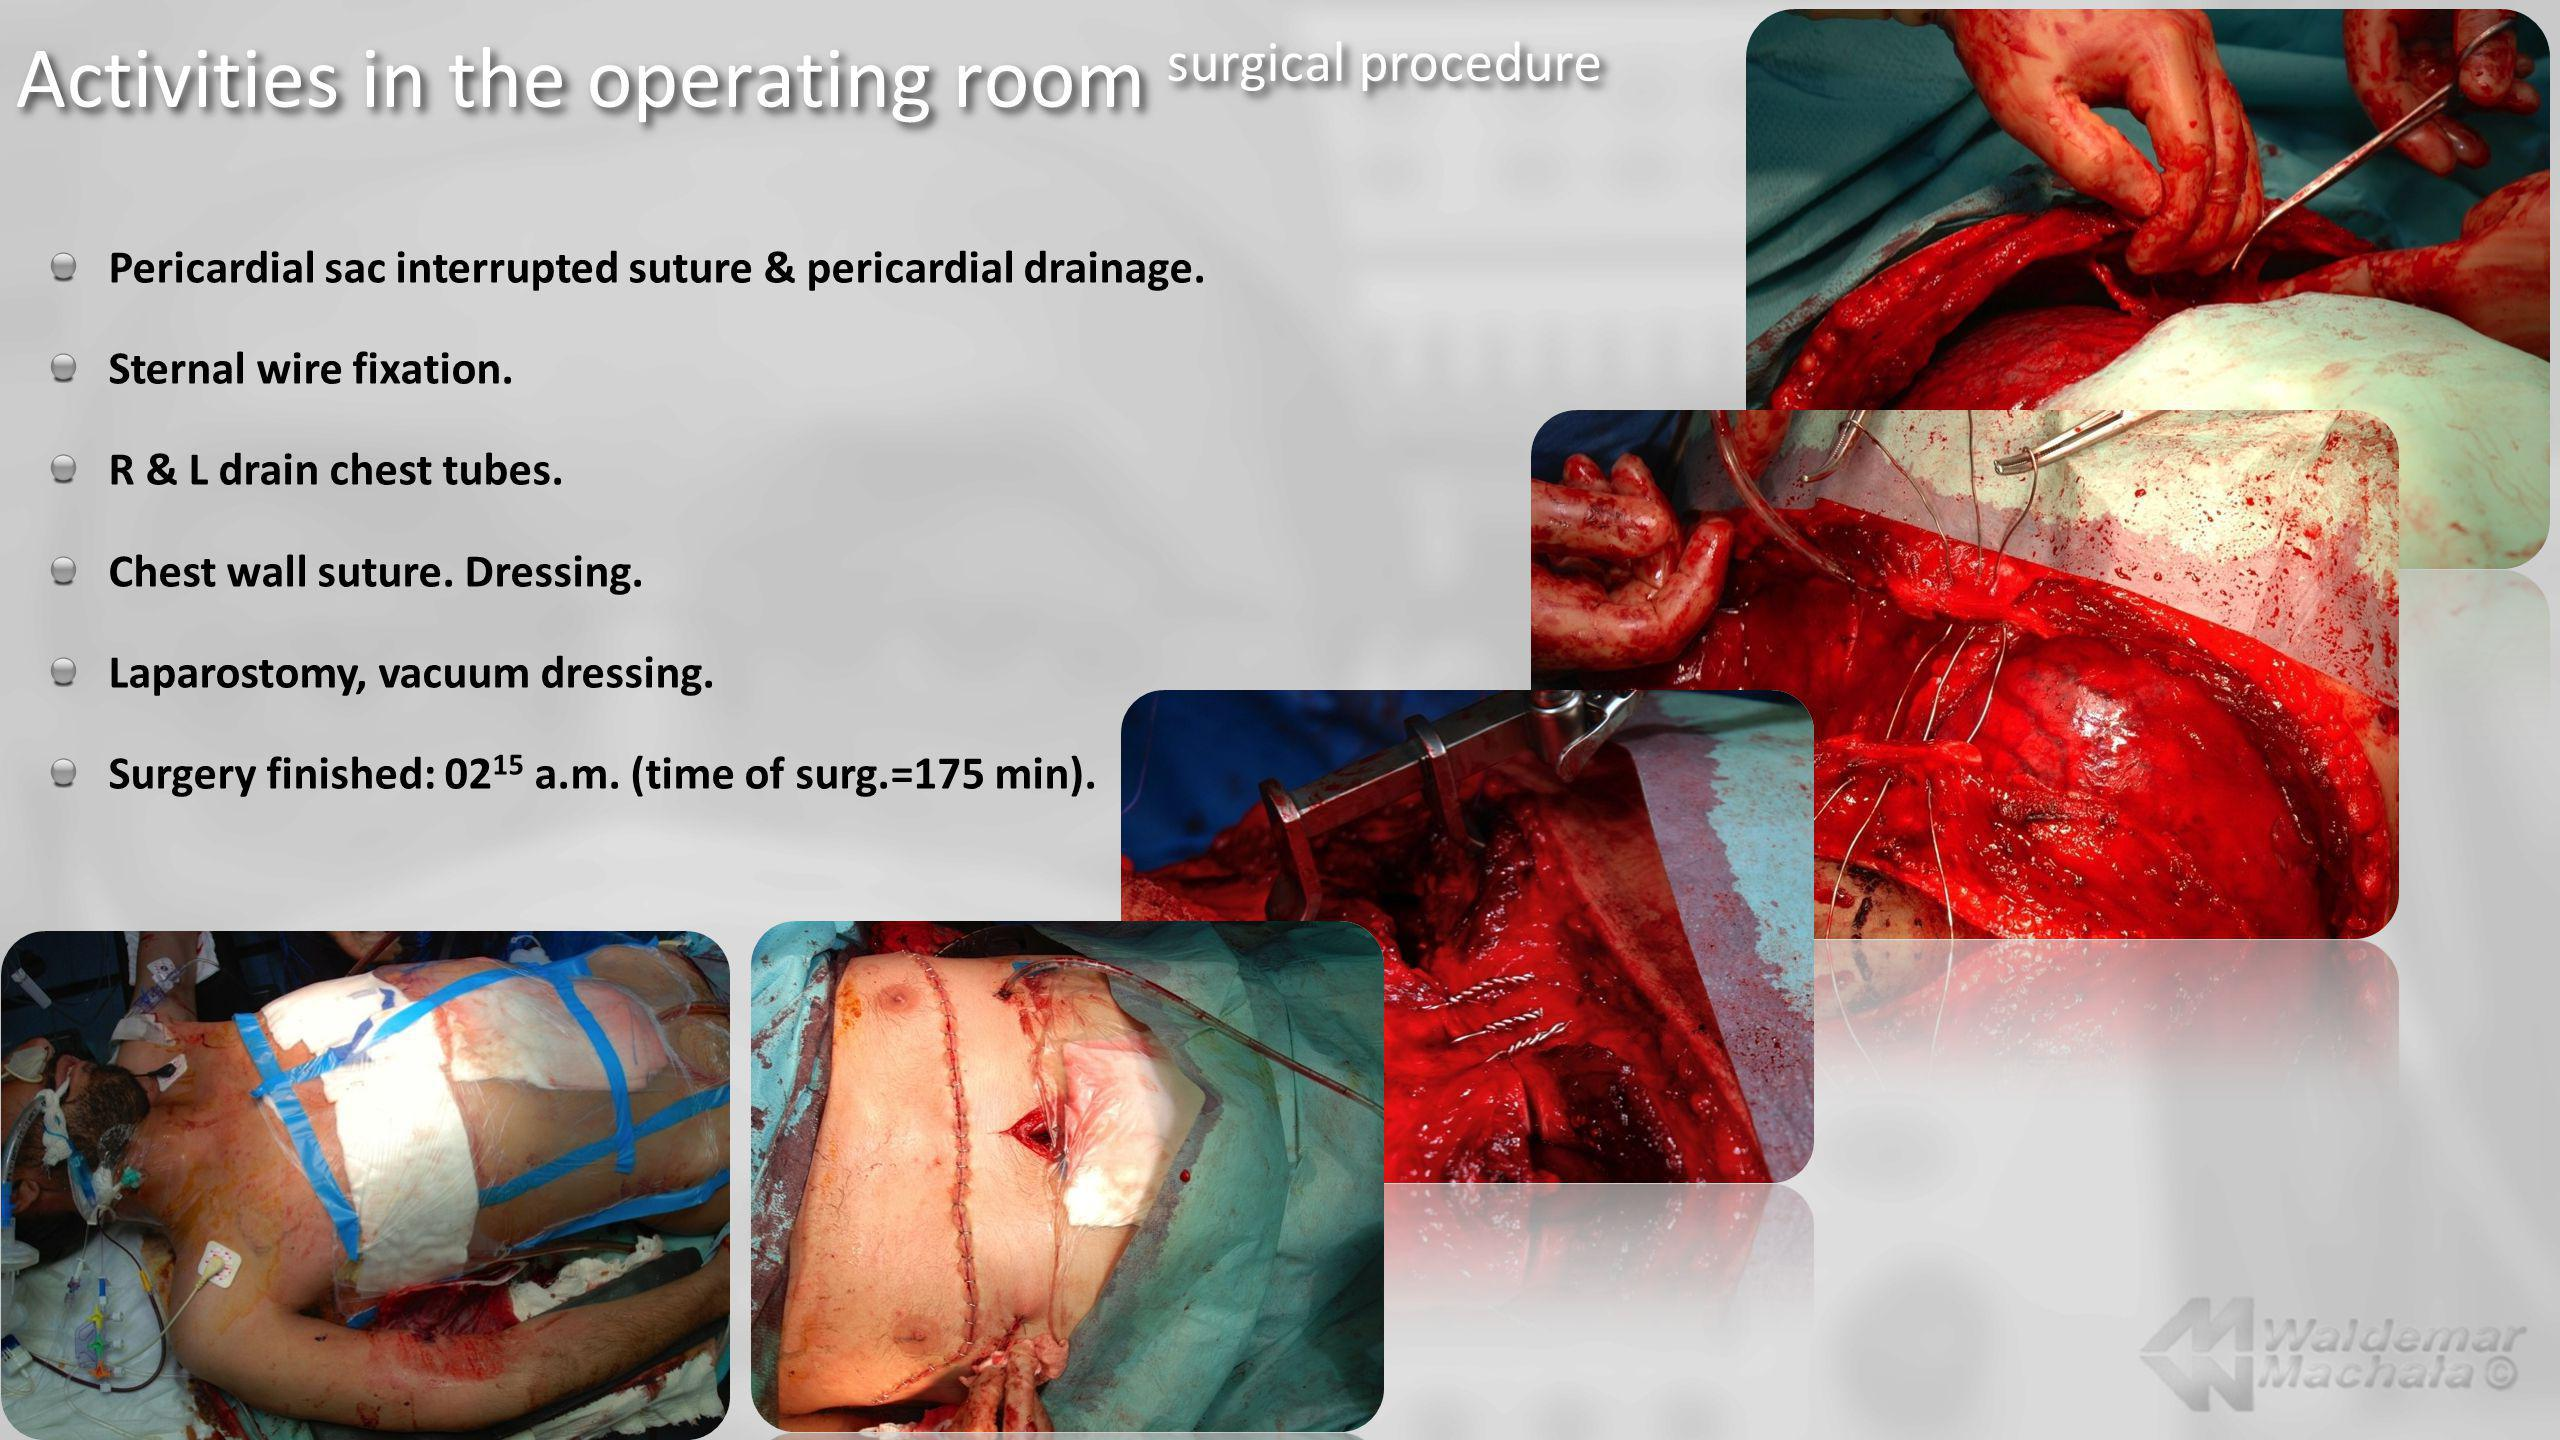 Activities in the operating room surgical procedure Pericardial sac interrupted suture & pericardial drainage. Sternal wire fixation. R & L drain ches